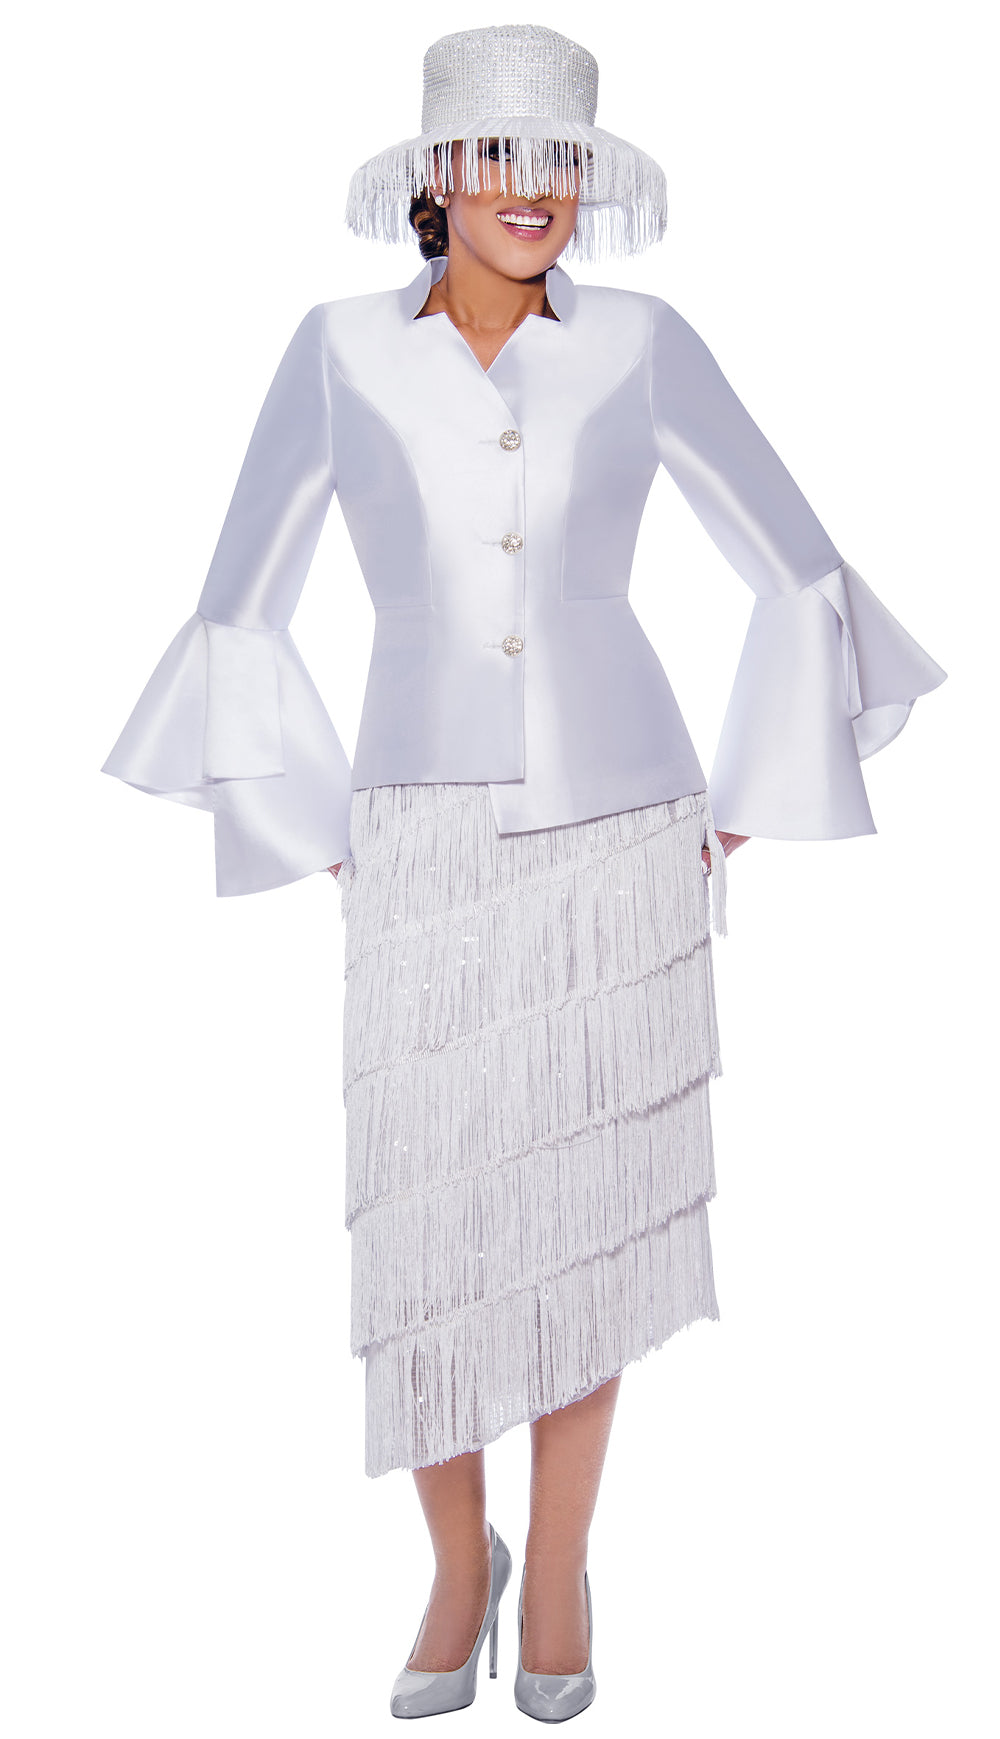 Dorinda Clark Cole Suit 9032-White - Church Suits For Less